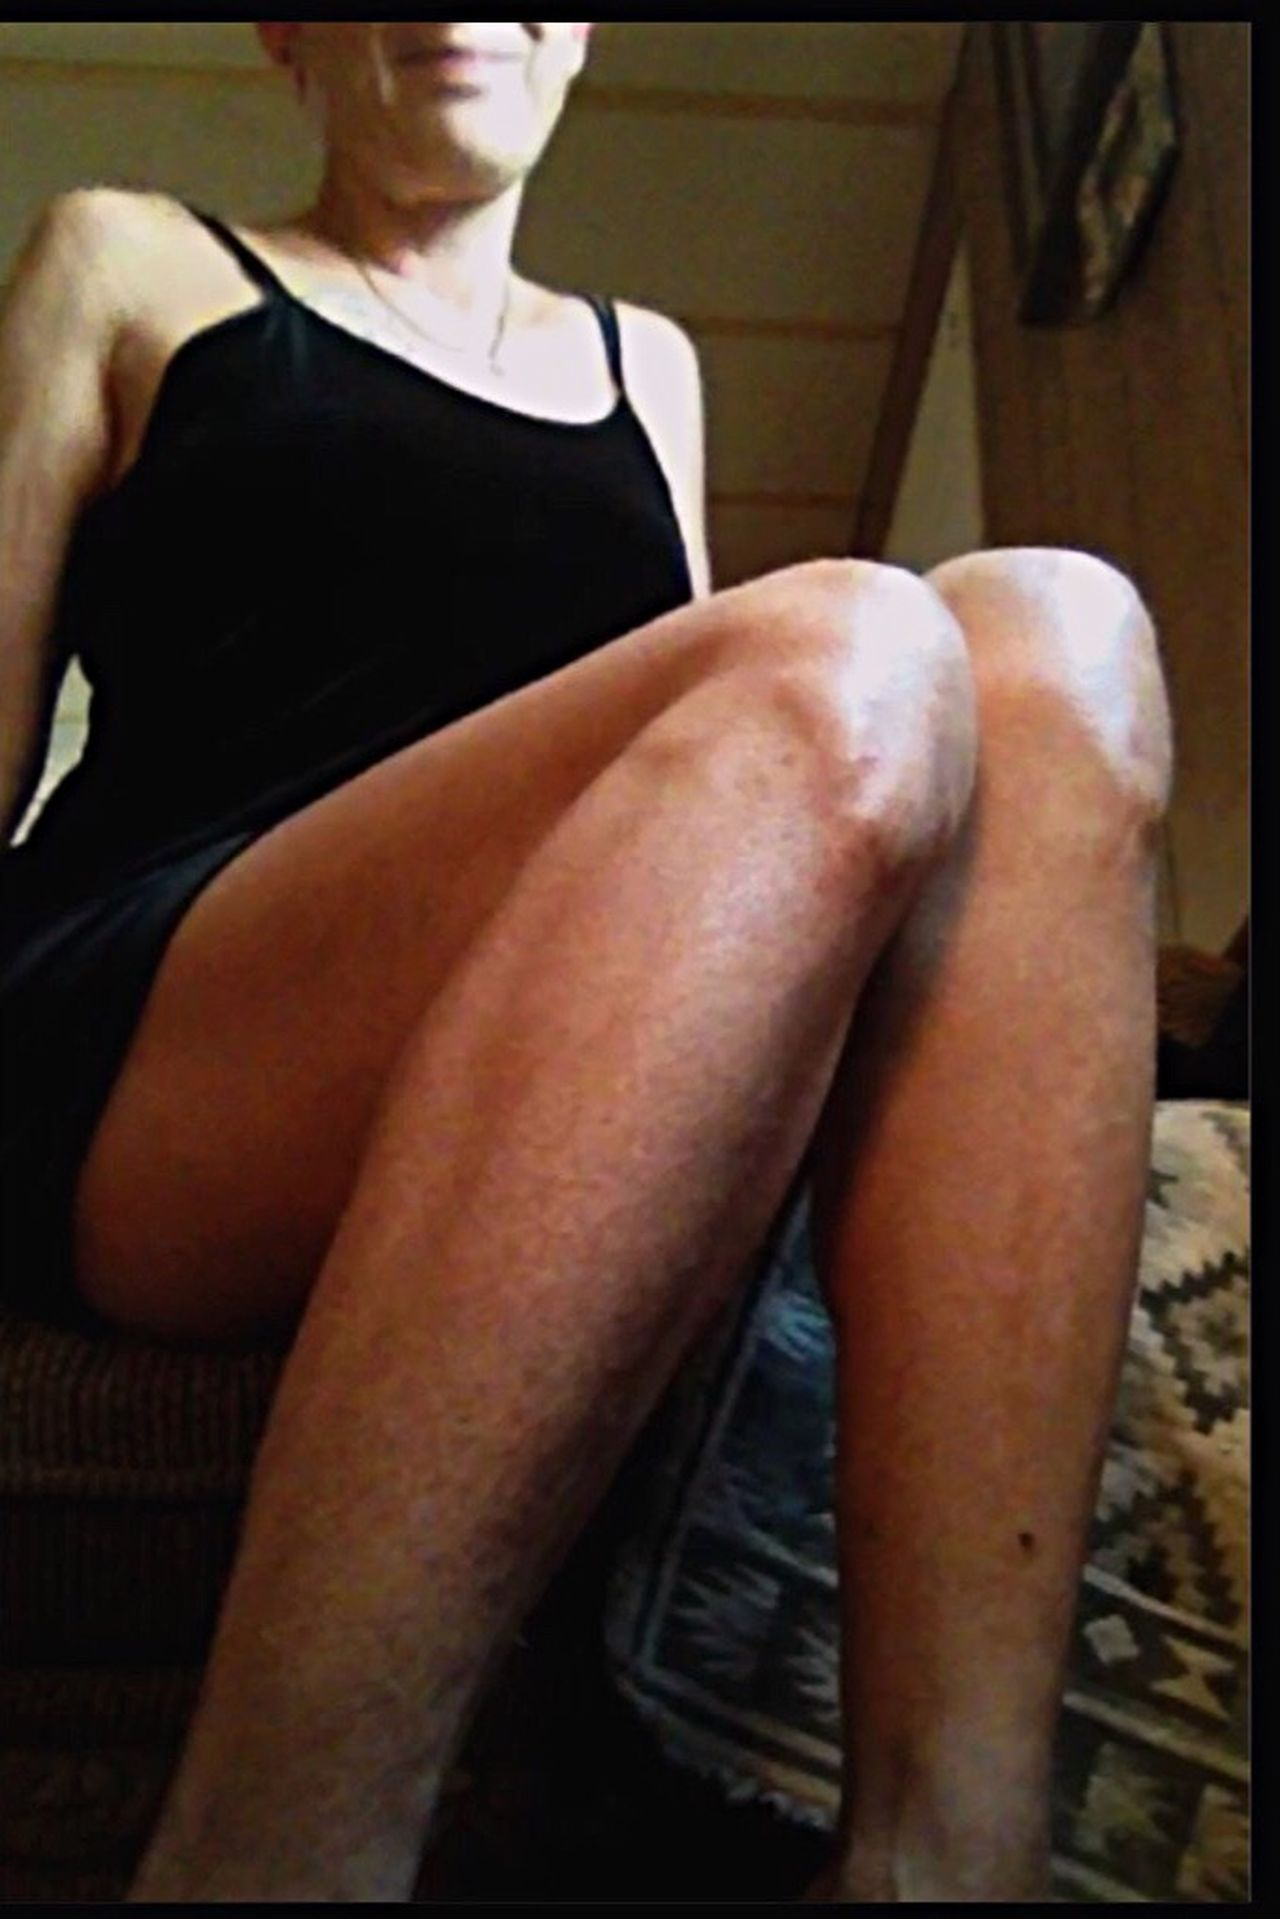 Legs Mylegs Beautiful Girl LongLegs Sitting Fashionable Simlpe Moment  Littleblackdress Indoors  Front View Closeupshot Ipadair2 NaturalBeauty  Devinetexas JustBeautiful JustMe Sexygirl Countrygirl Pretty Girl Country Living Simple Beauty Simplicity Simplicity Is Beauty. Self Portrait Portrait Of A Woman